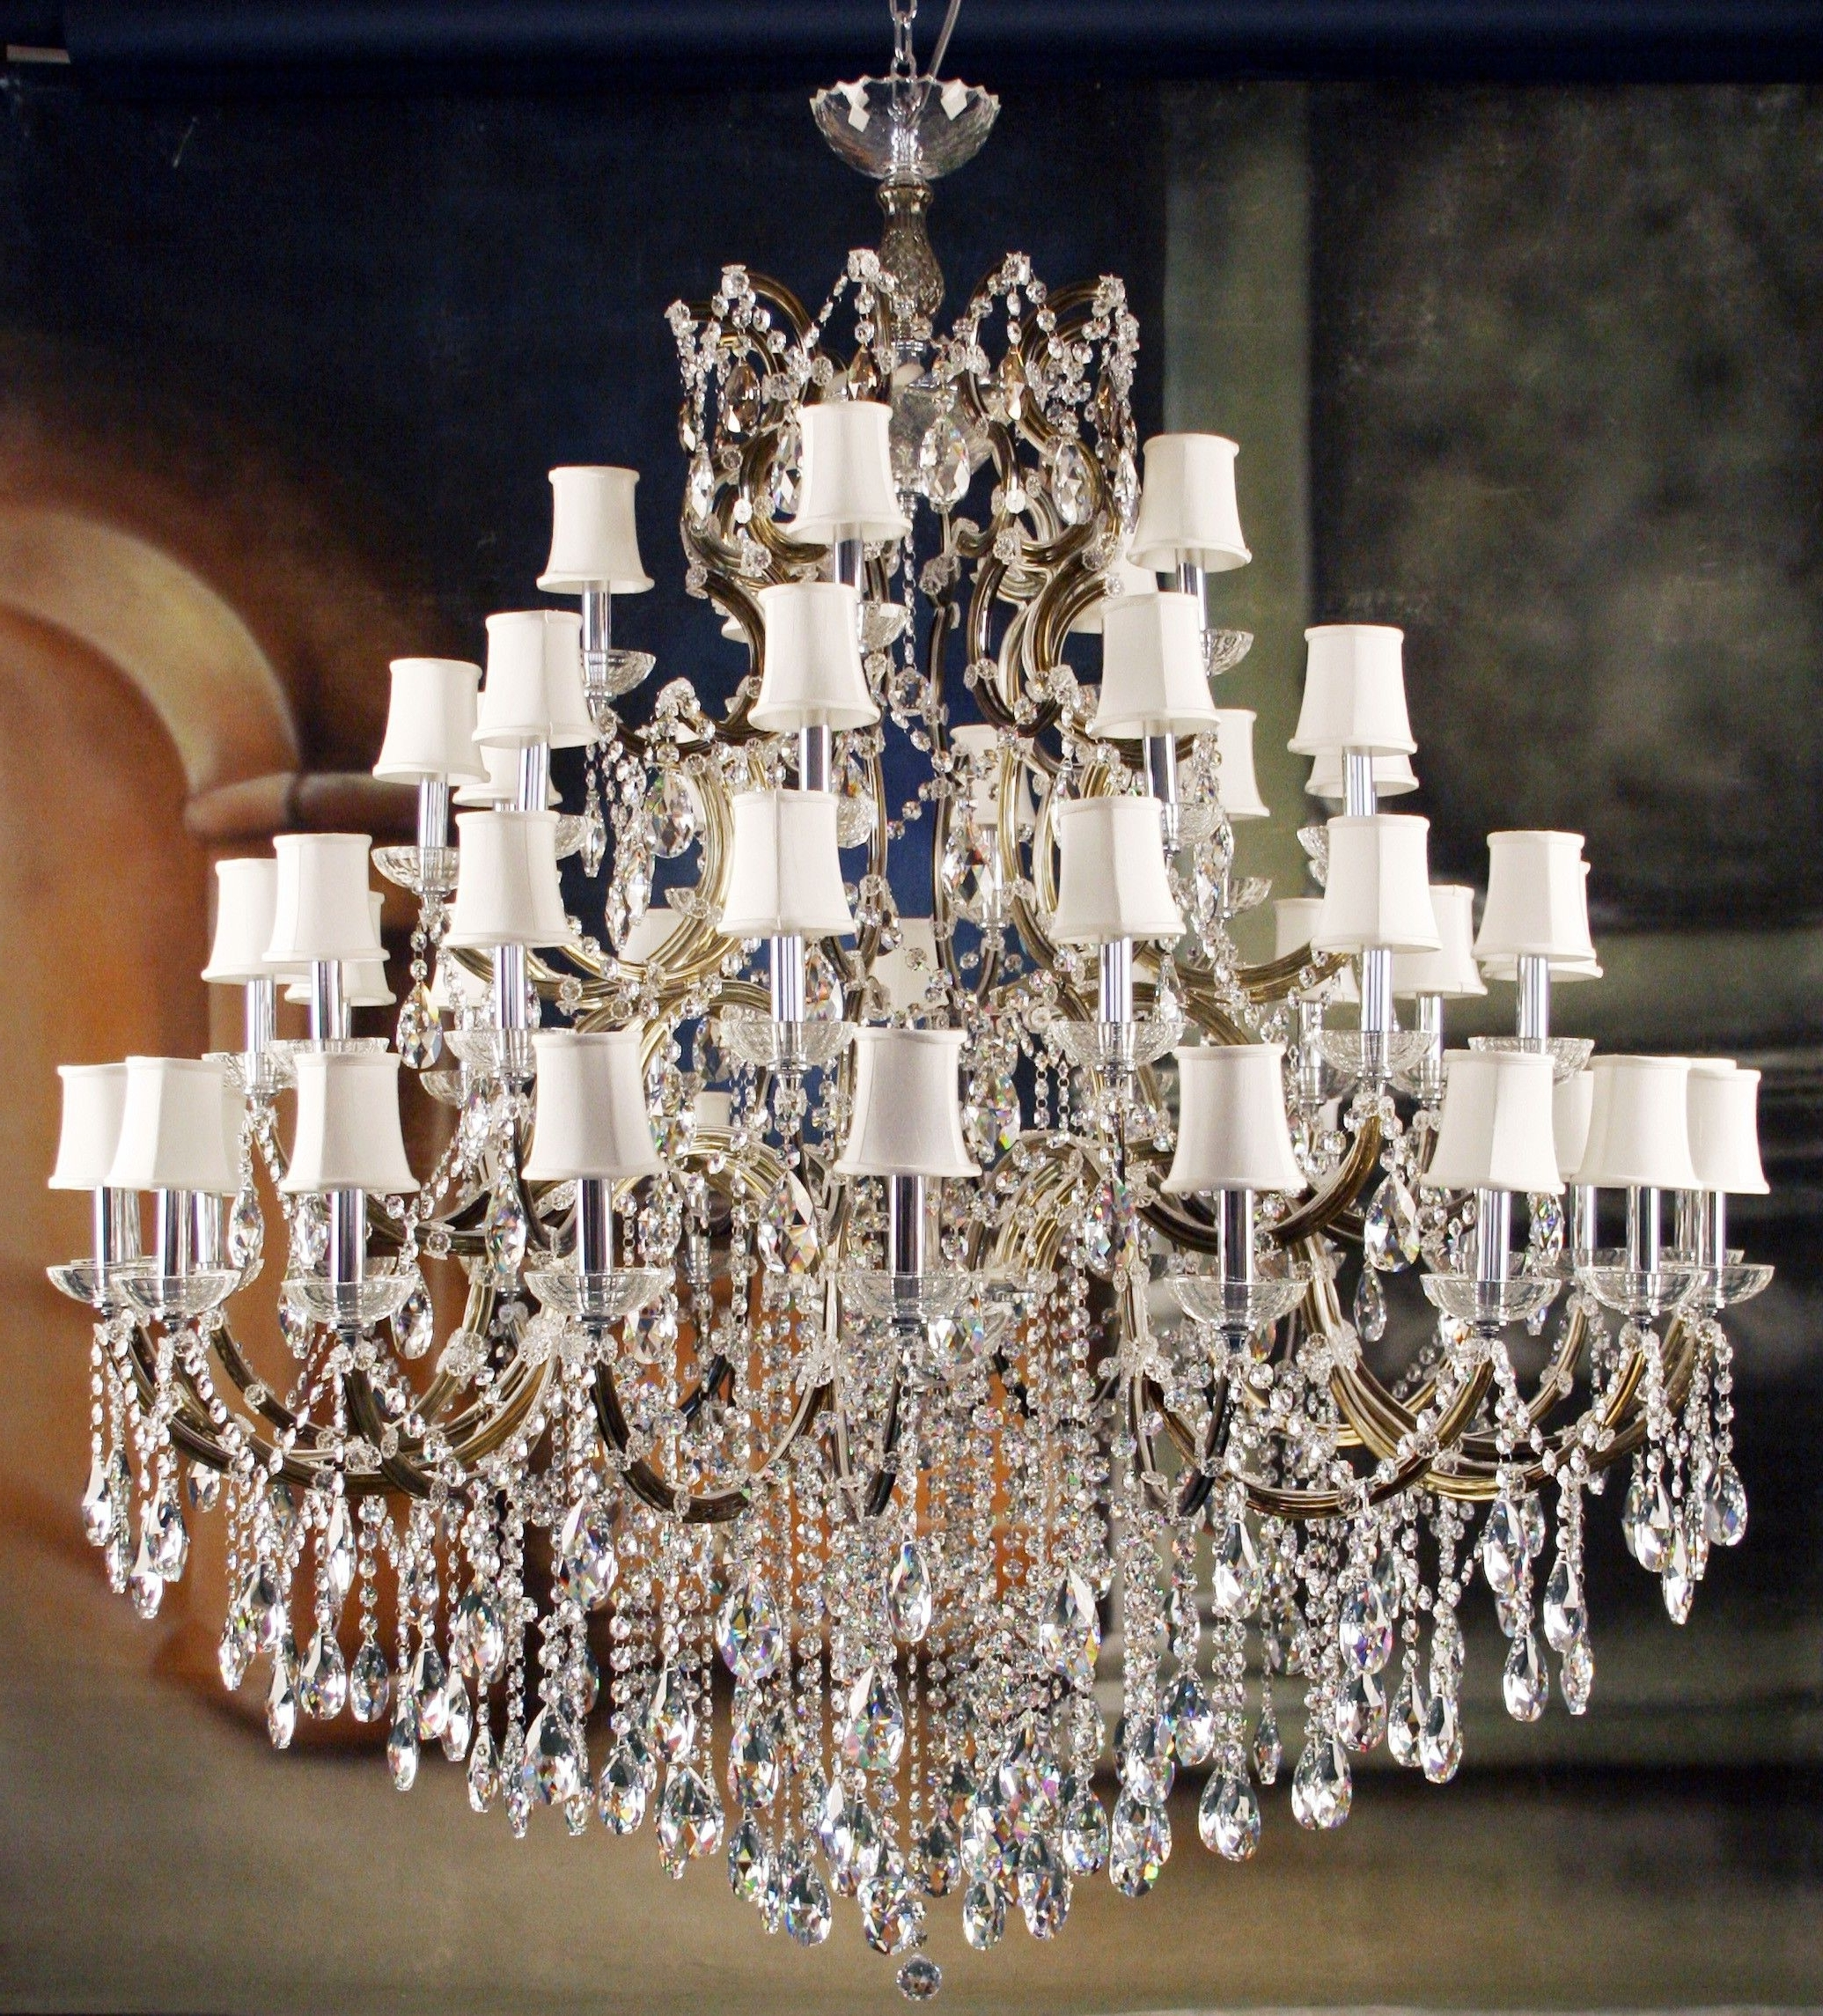 Impressive Unique Crystal Chandeliers Designer Lighting Unique Inside Popular Crystal Chandeliers With Shades (Gallery 11 of 20)